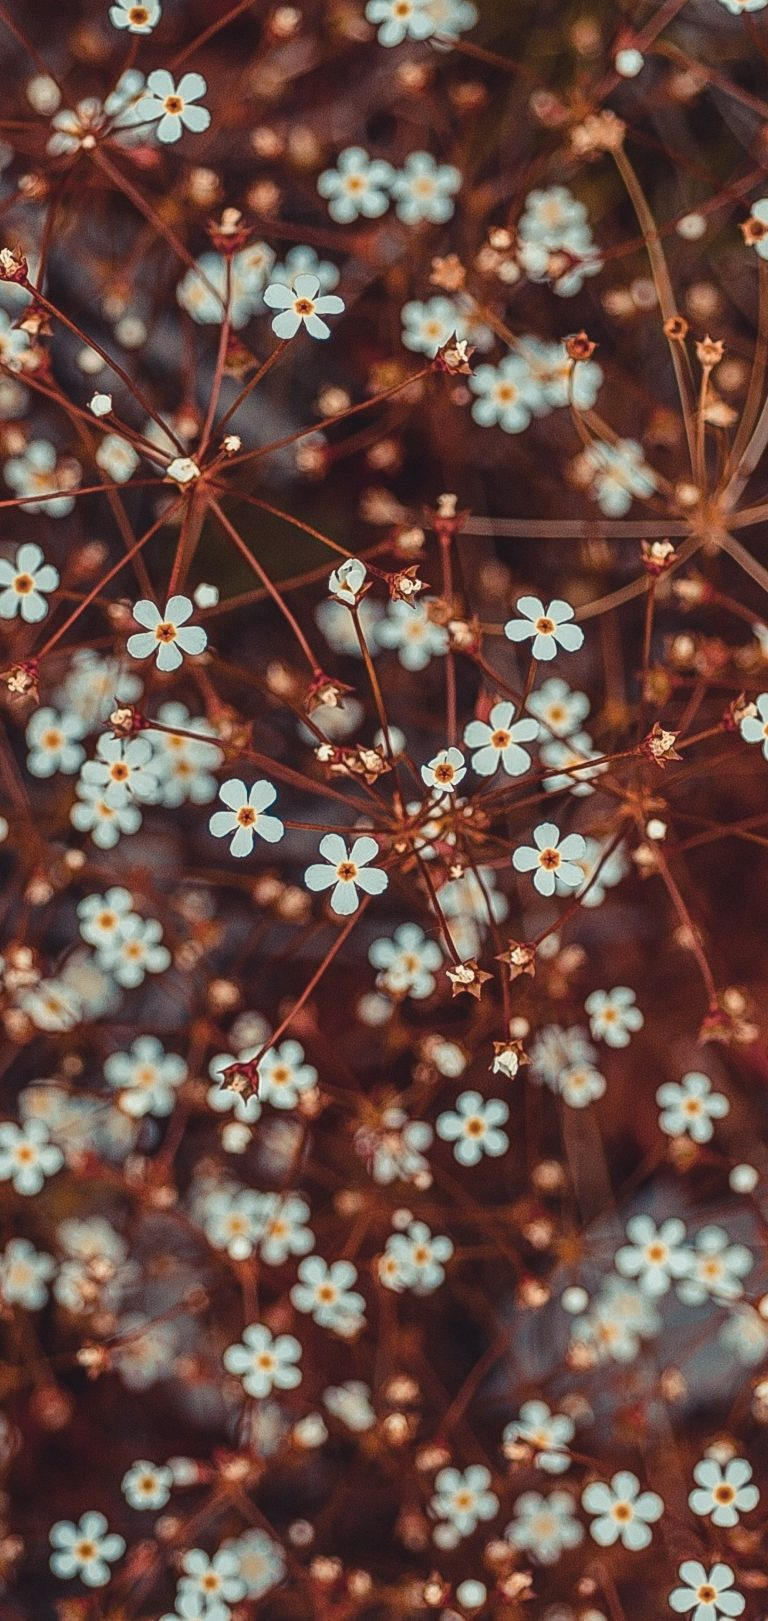 Flowers Blooming Branches Wallpaper 1440x3040 768x1621